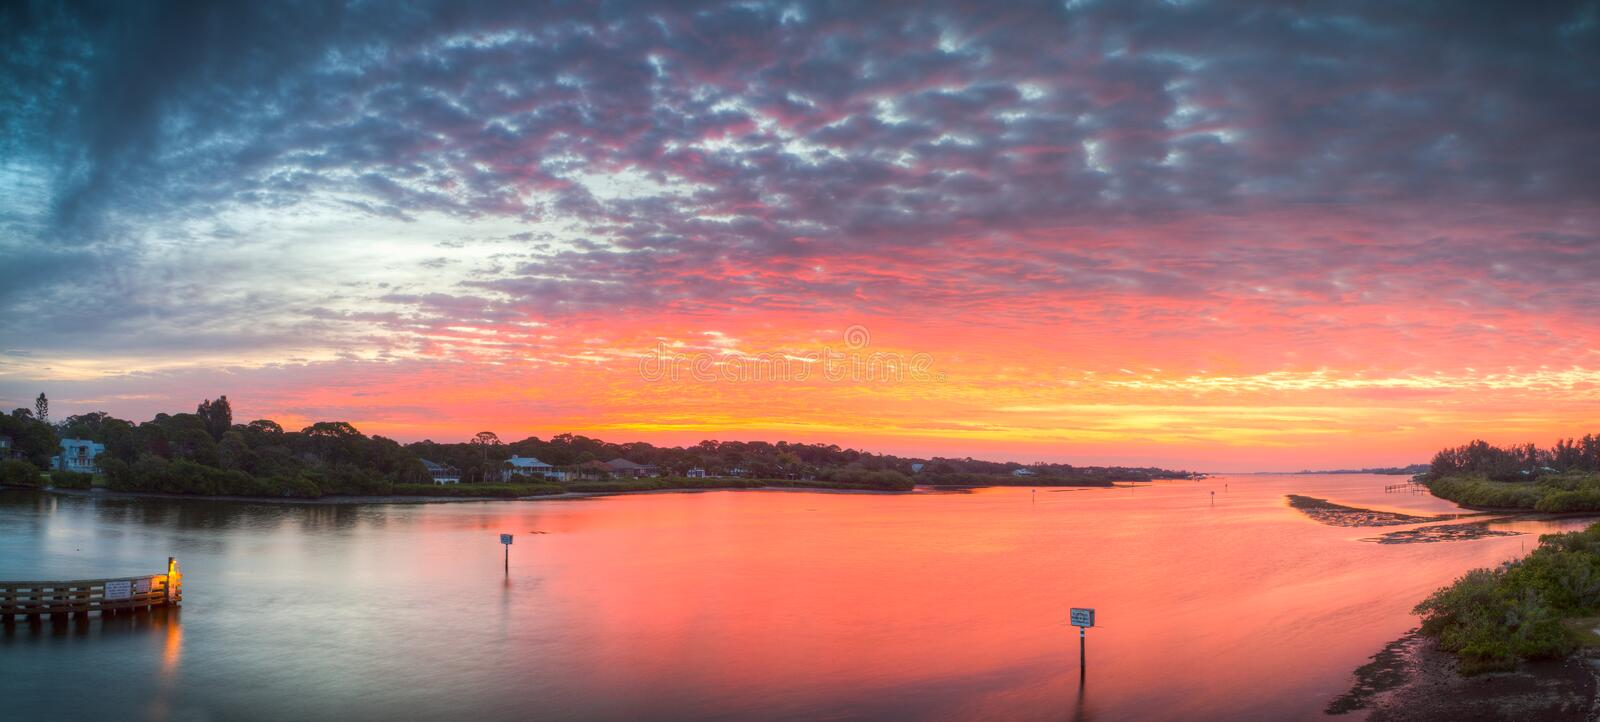 Remarkable colorful sunrise over intercostal in Florida. Remarkable colorful sunrise over intercostal in Englewood,Florida stock images